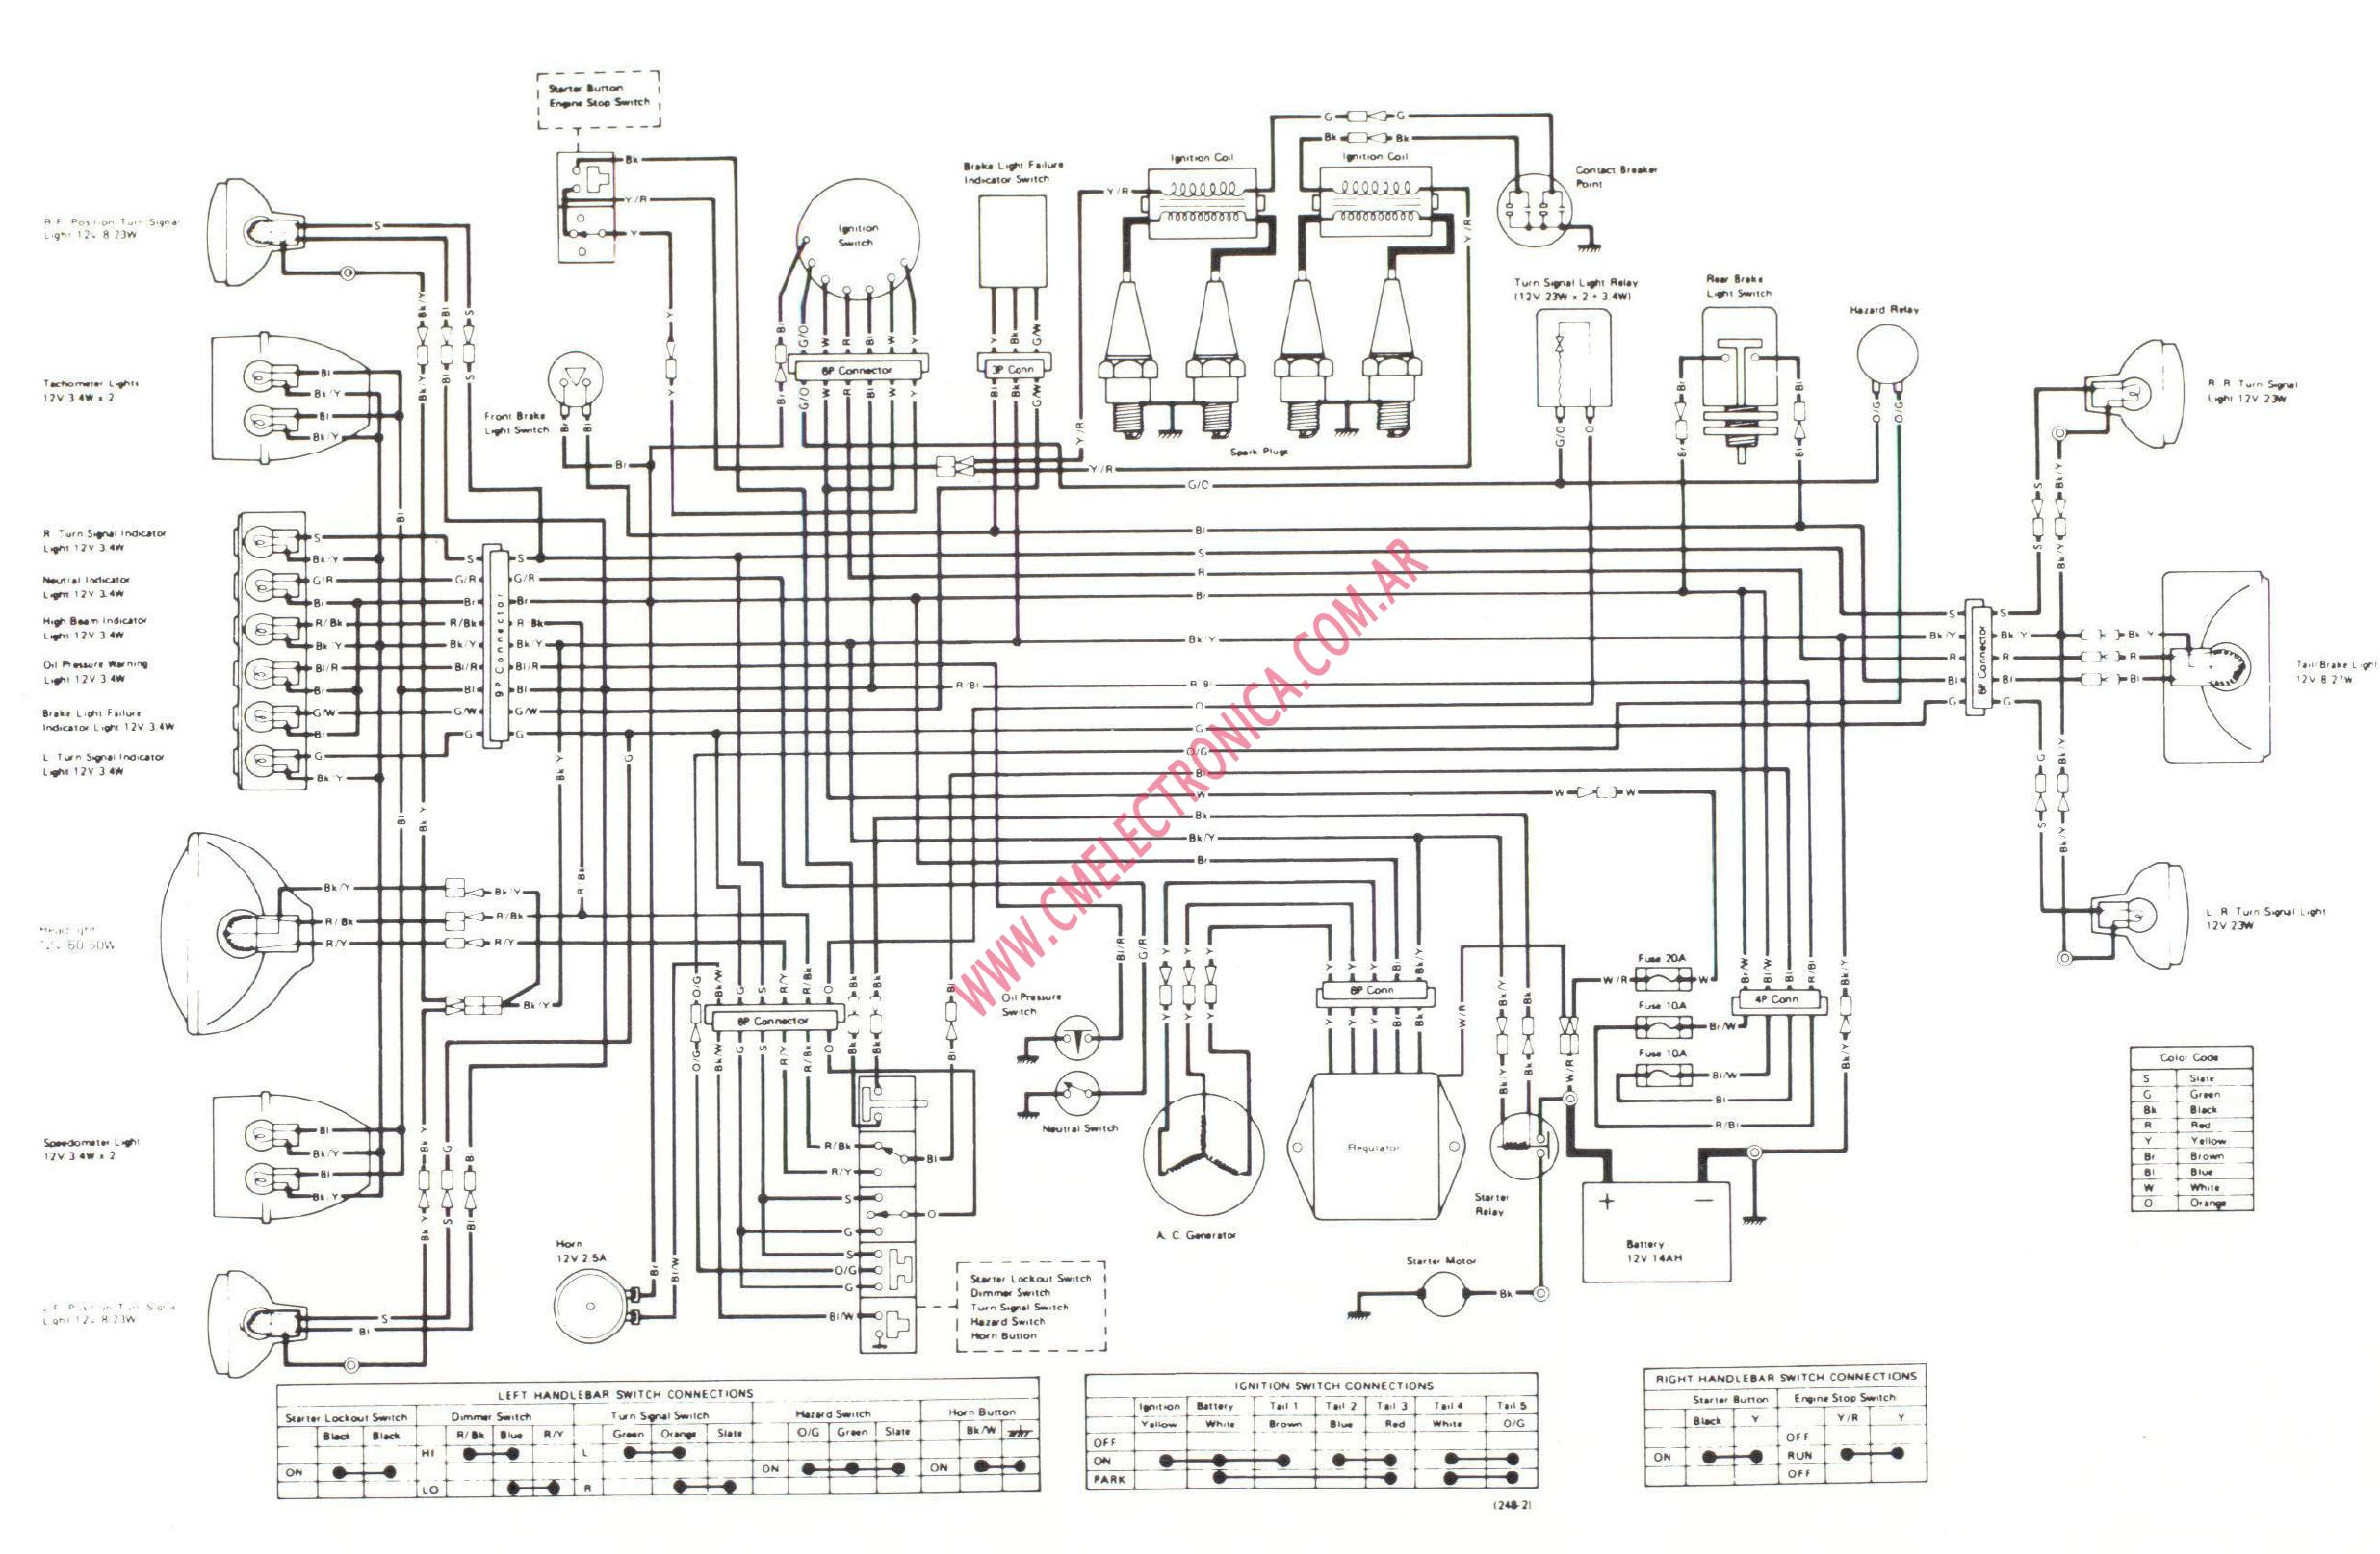 Kz1000 Wiring Diagram 2000 Simple Guide About 1979 Kawasaki 250 Schematics Images Gallery Diagrama